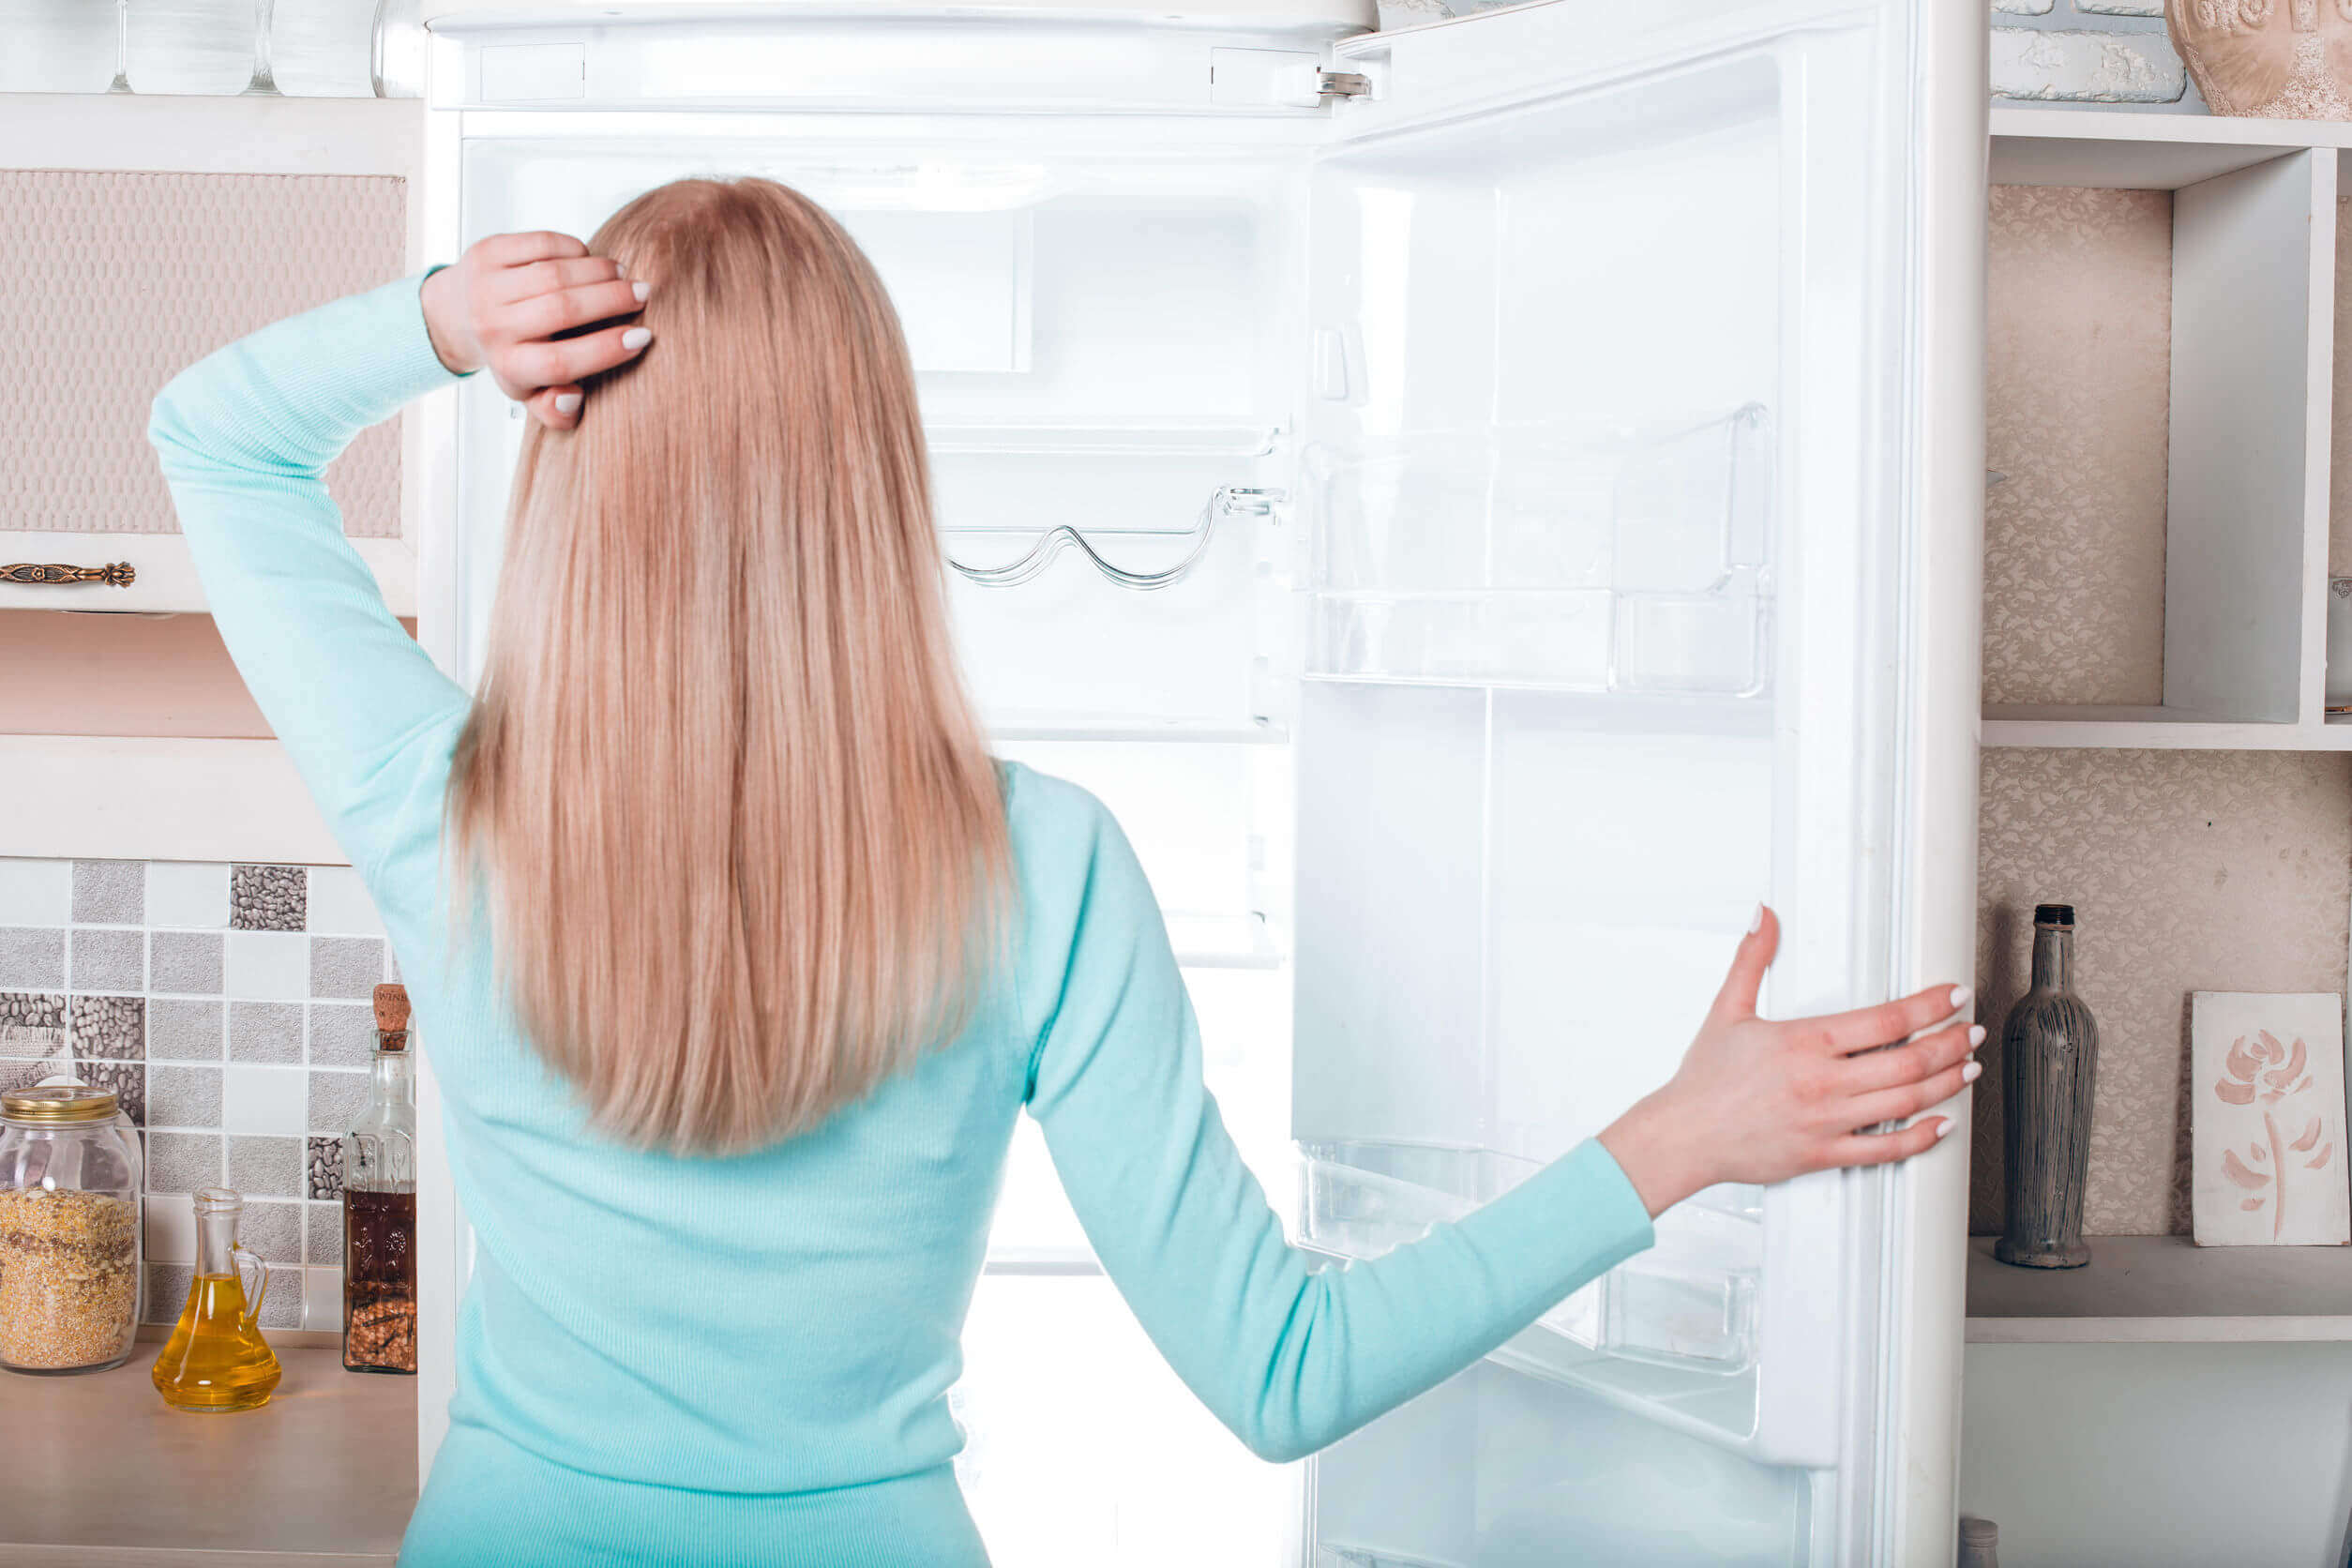 A woman looking at her freezer.